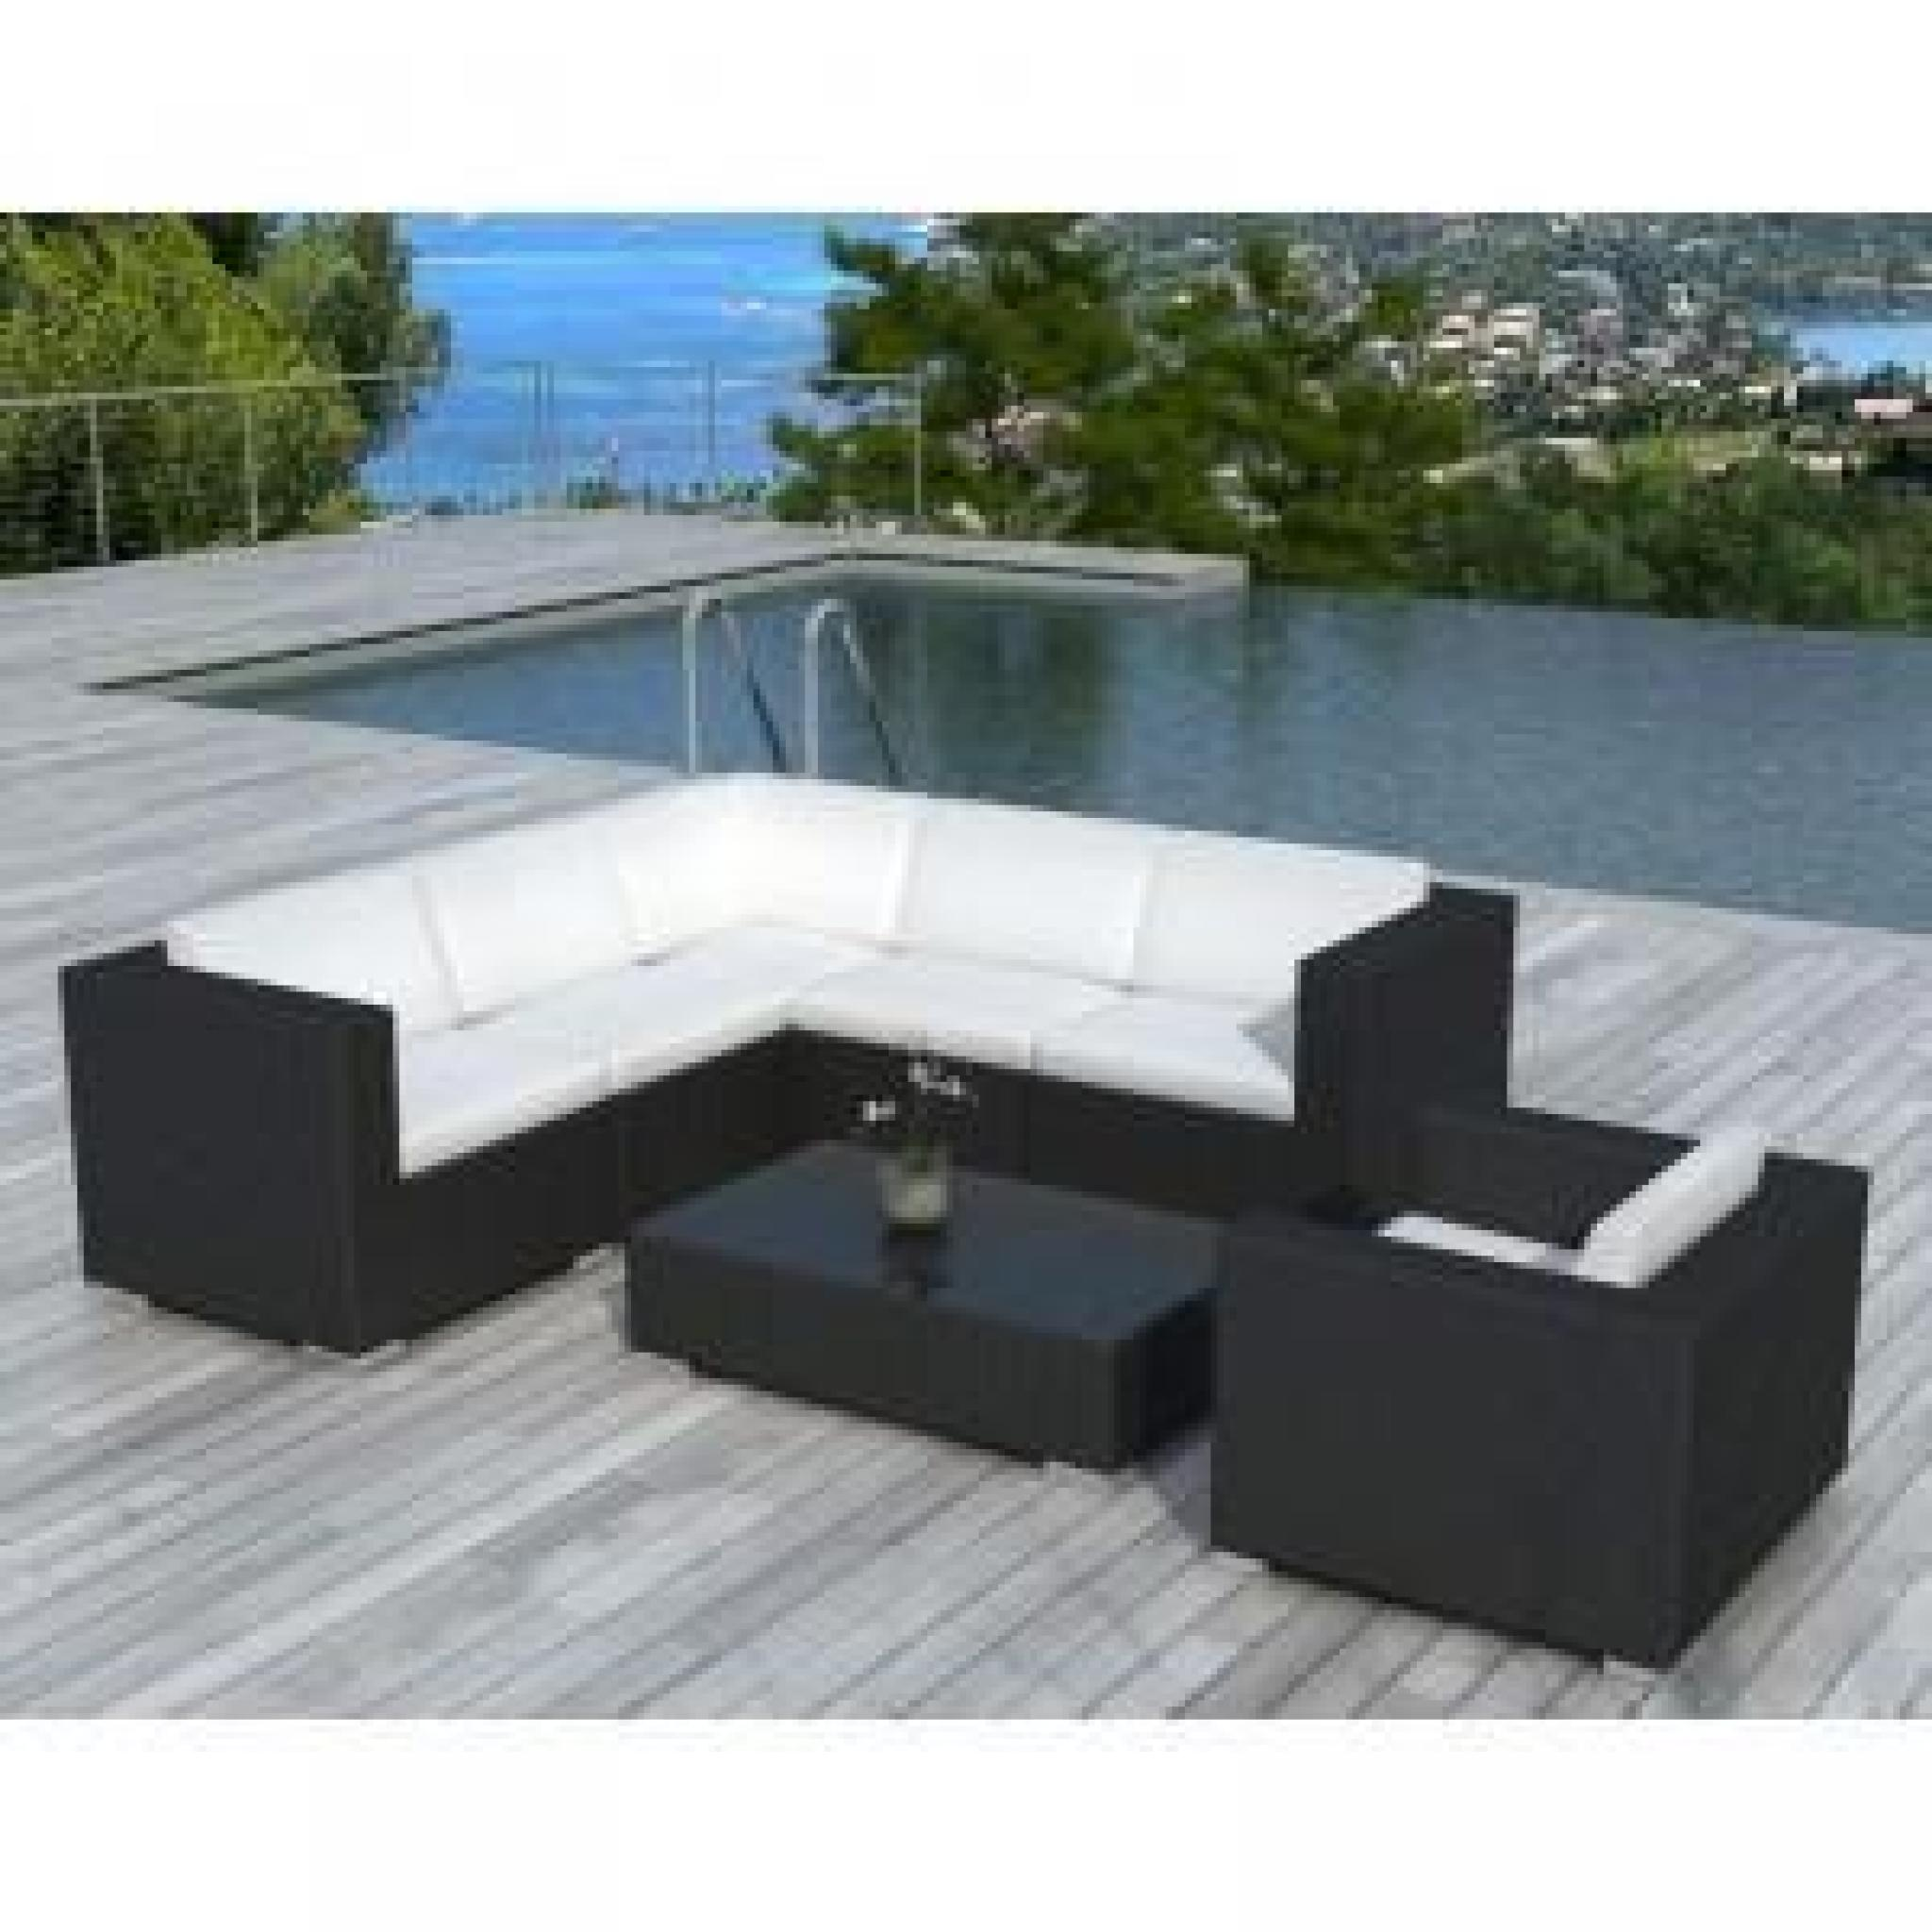 paris prix salon de jardin en r sine tress e d 39 angle noir achat vente salon de jardin en. Black Bedroom Furniture Sets. Home Design Ideas